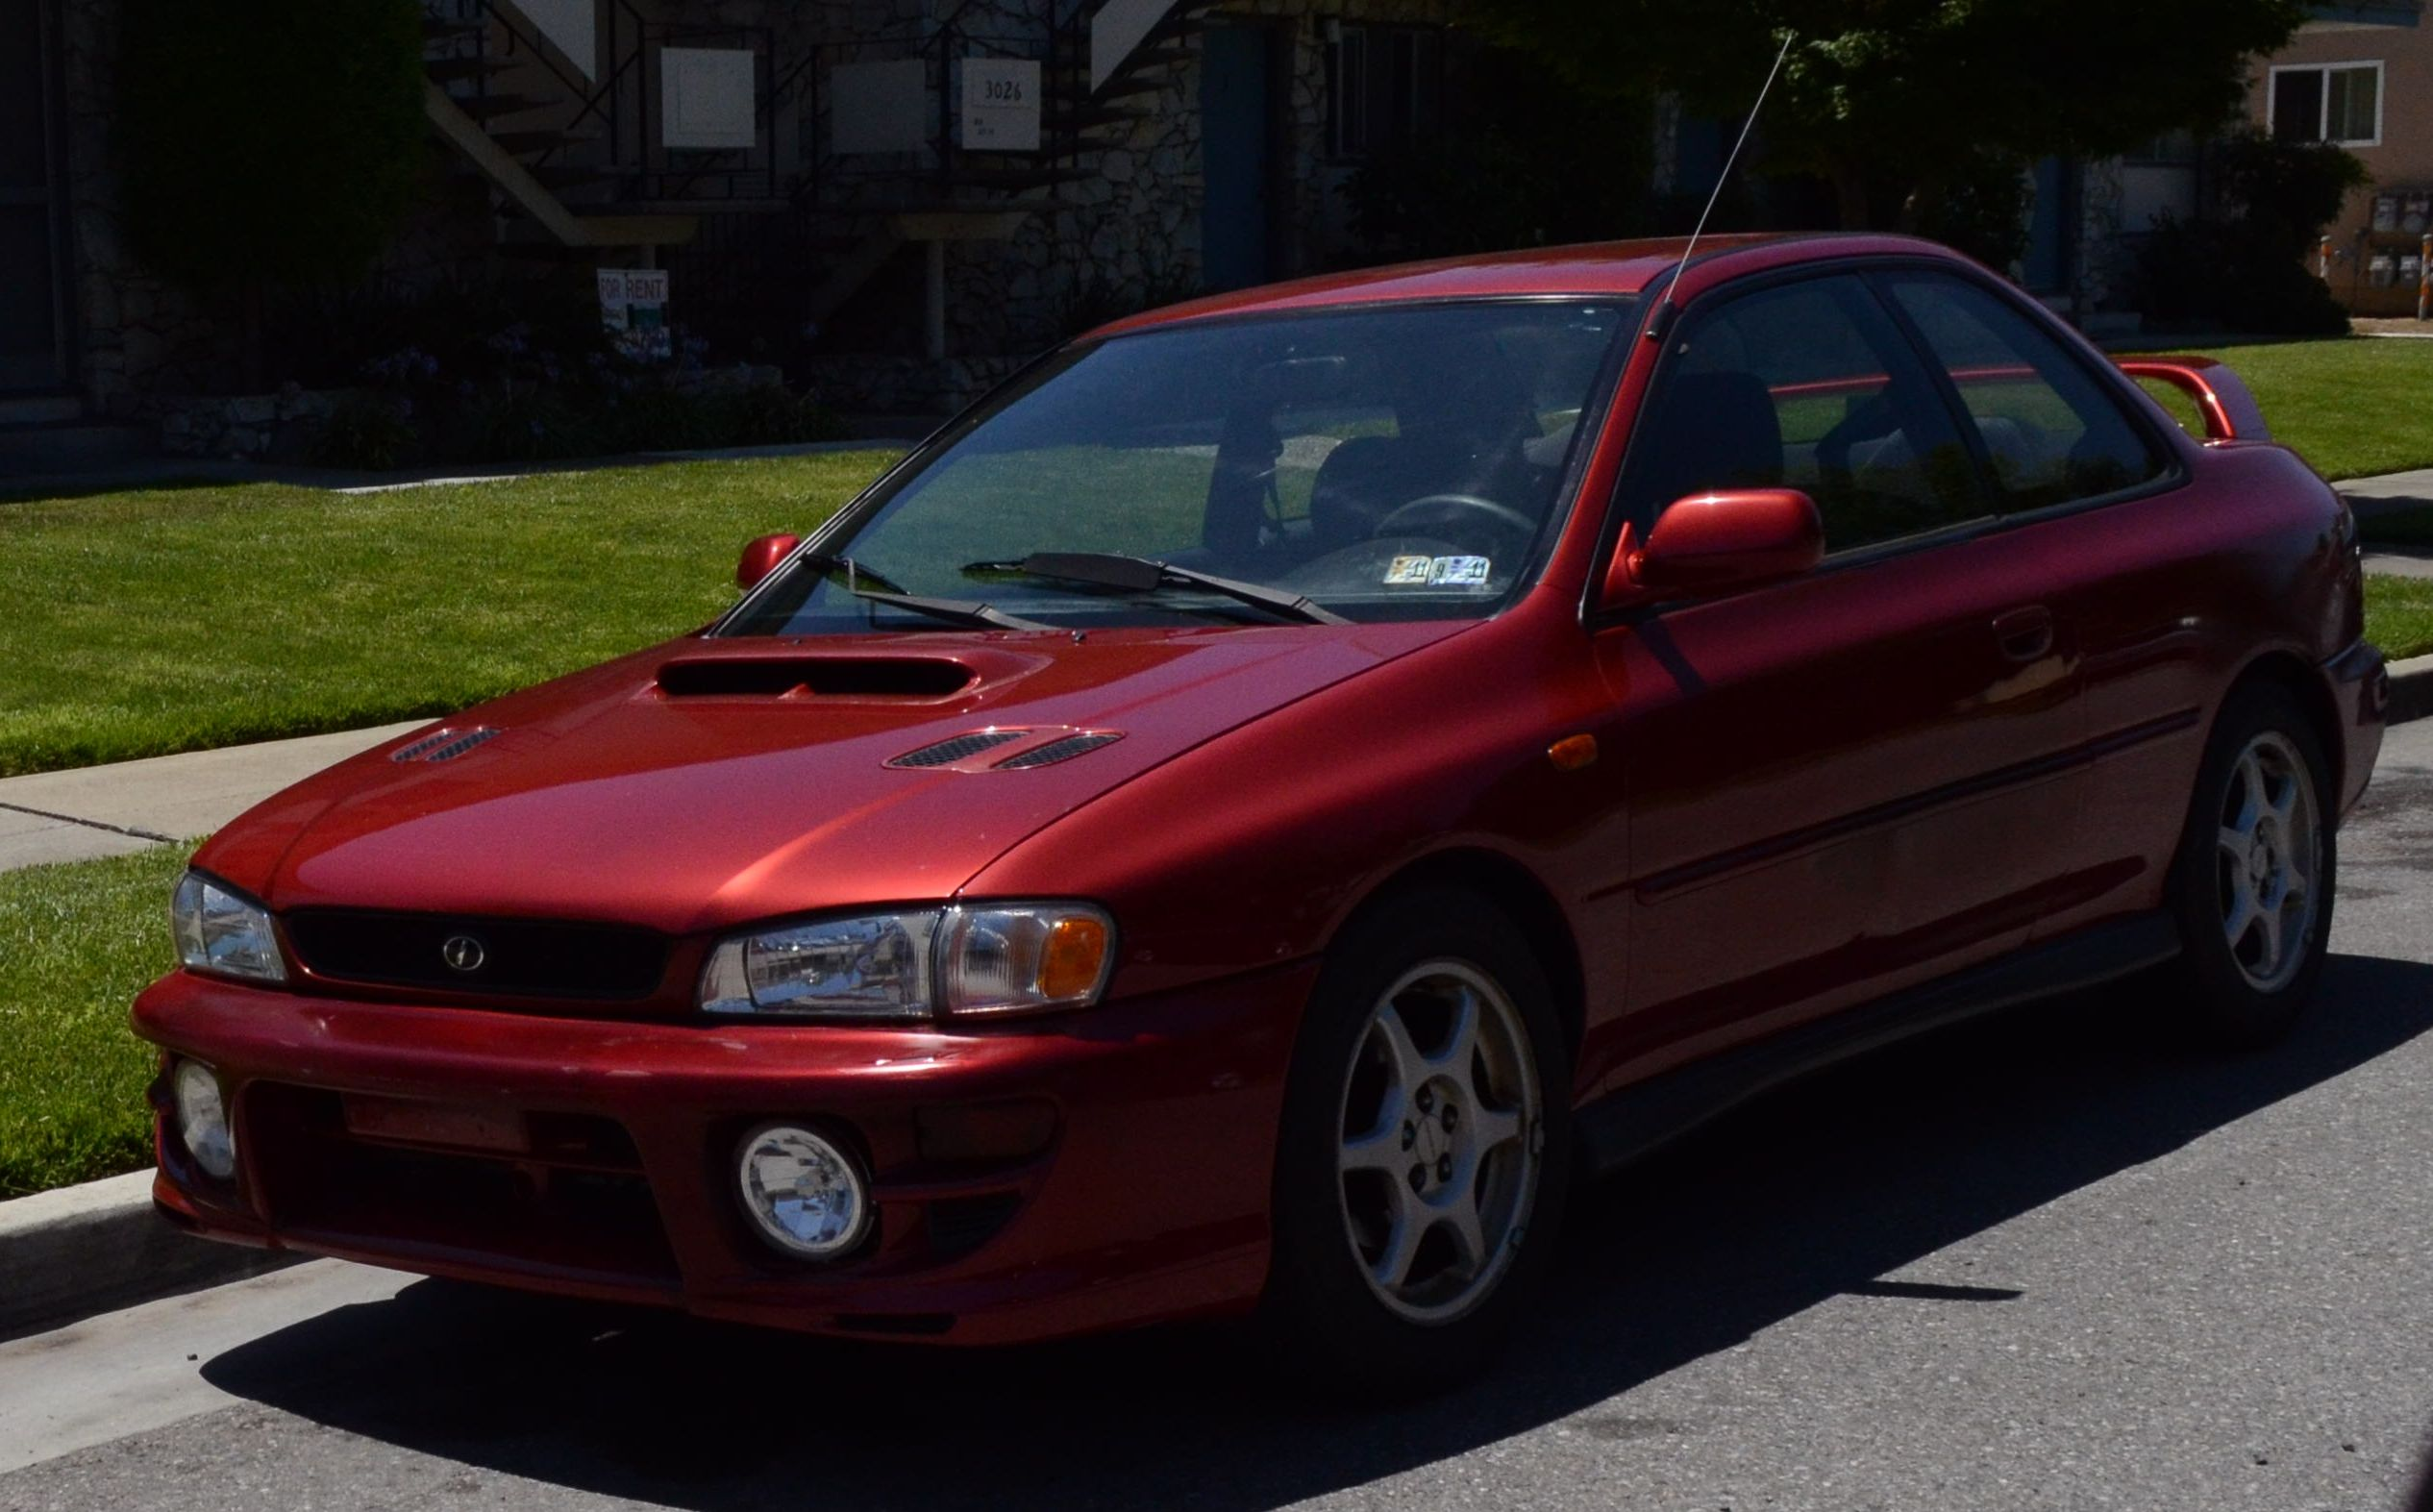 my 2000 subaru impreza 2.5rs srp. | my impreza 2.5rs coupe